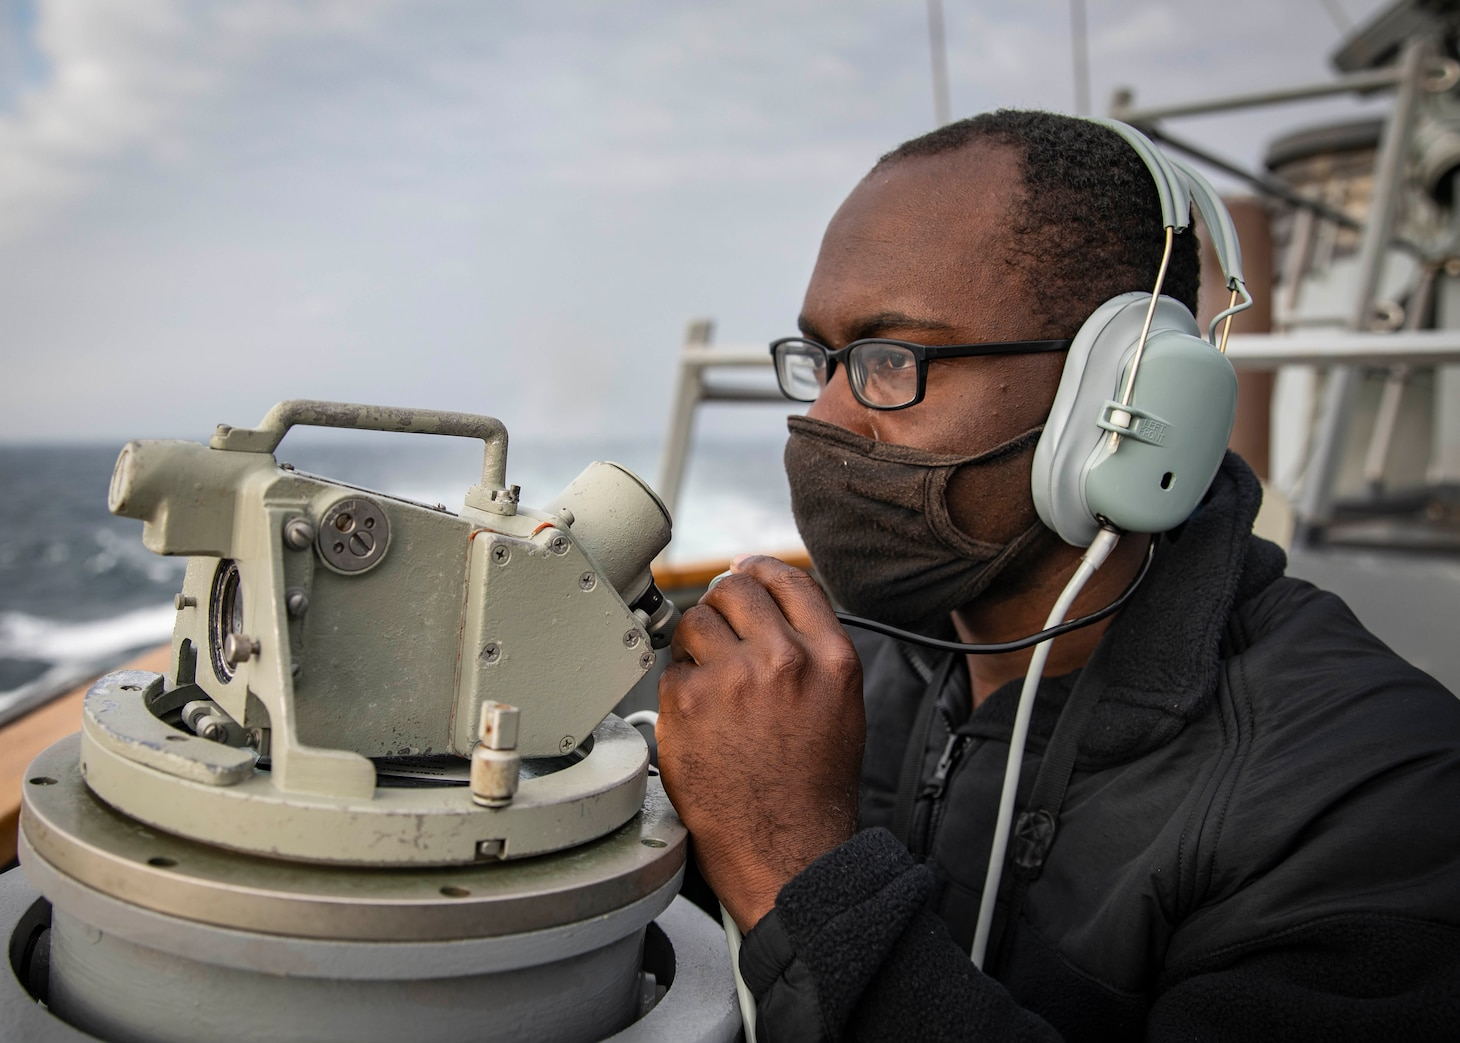 210407-N-HI376-1072 TAIWAN STRAIT (April 7, 2021) Seaman James Bailey, from Greenville, S.C., stands watch on the bridge of the Arleigh Burke-class guided-missile destroyer USS John S. McCain (DDG 56) during routine underway operations. John S. McCain is forward-deployed to the U.S. 7th Fleet area of operations in support of a free and open Indo-Pacific. (U.S. Navy photo by Mass Communication Specialist 1st Class Jeremy Graham)